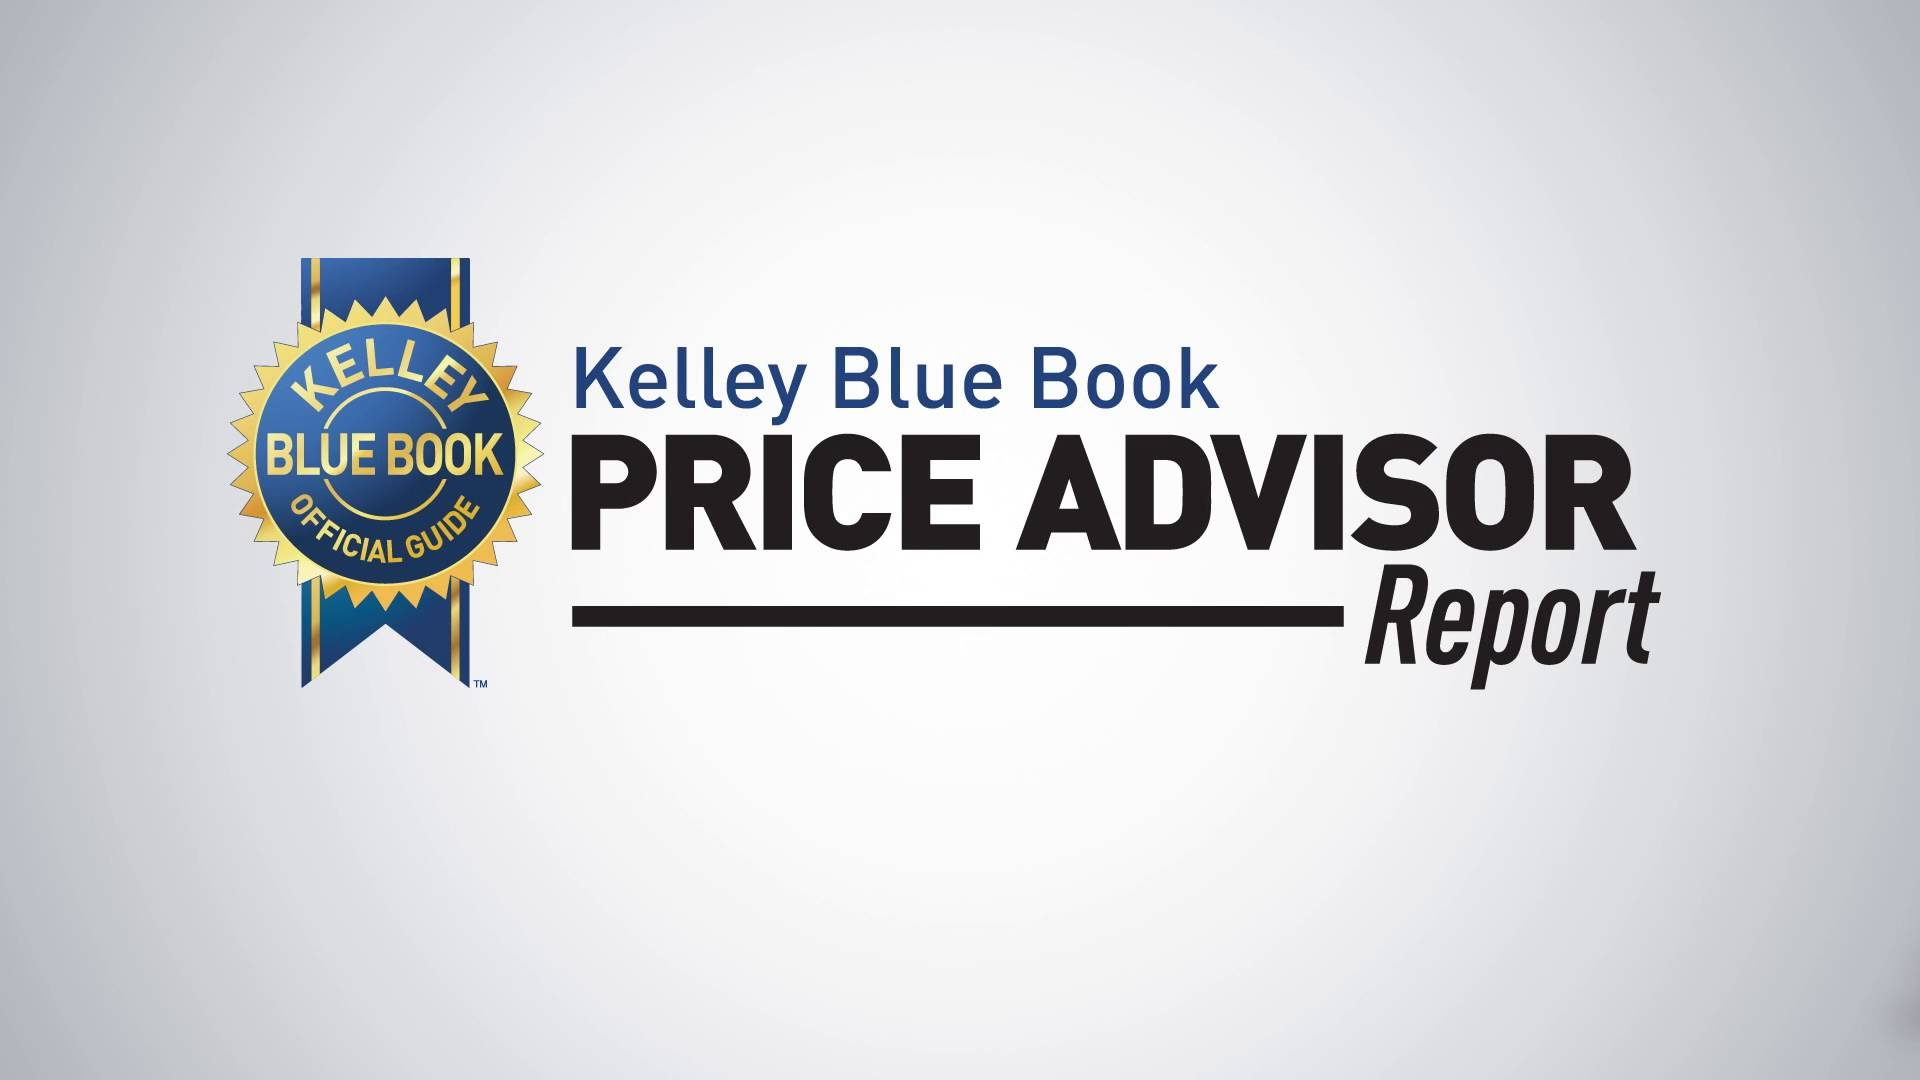 kelley blue book price advisor report used car pricing tool